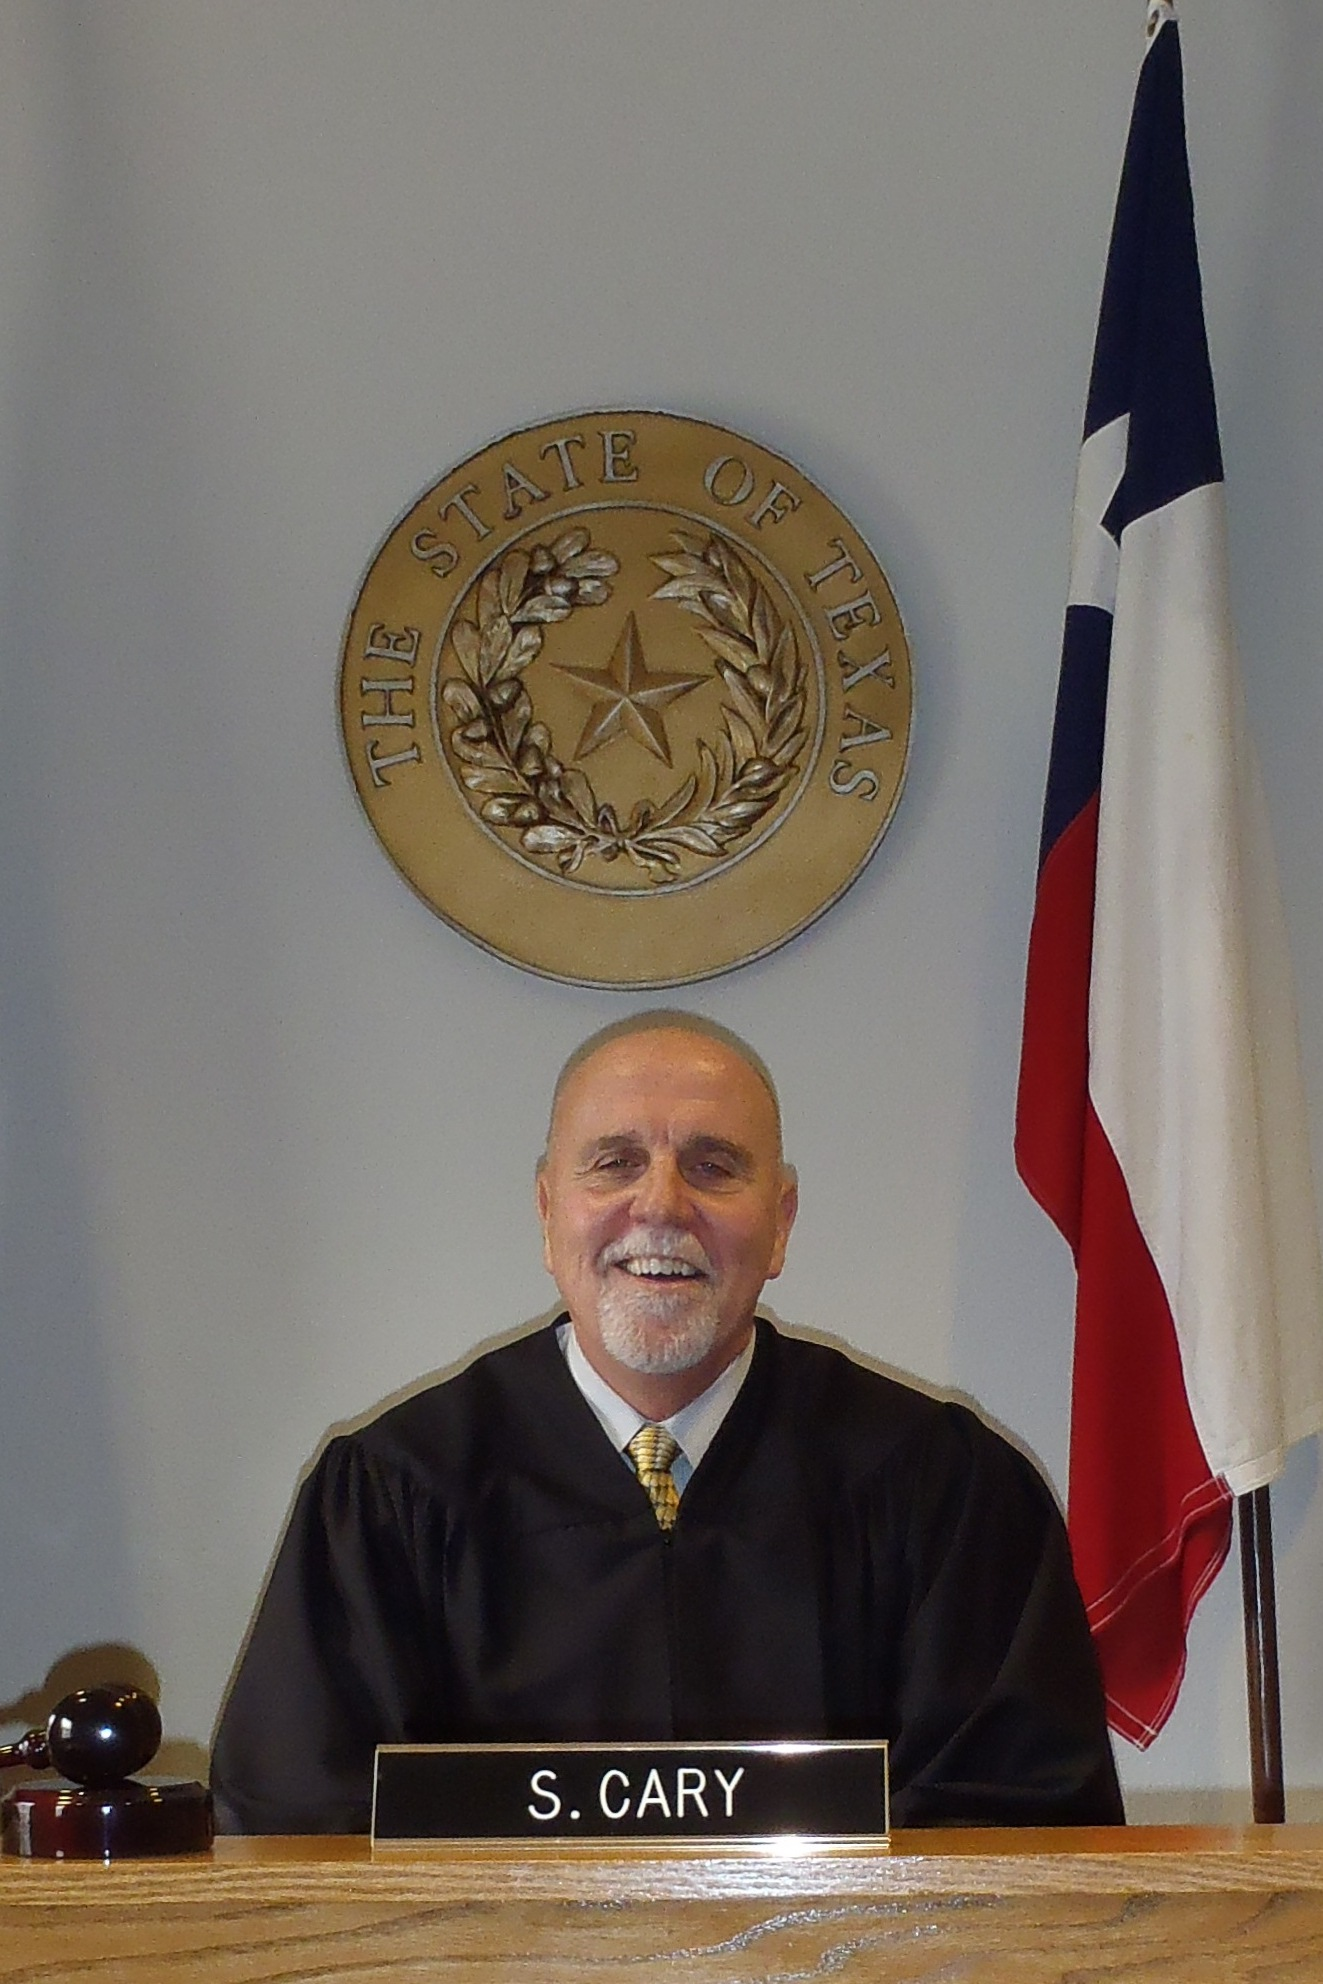 Judge Cary at the bench